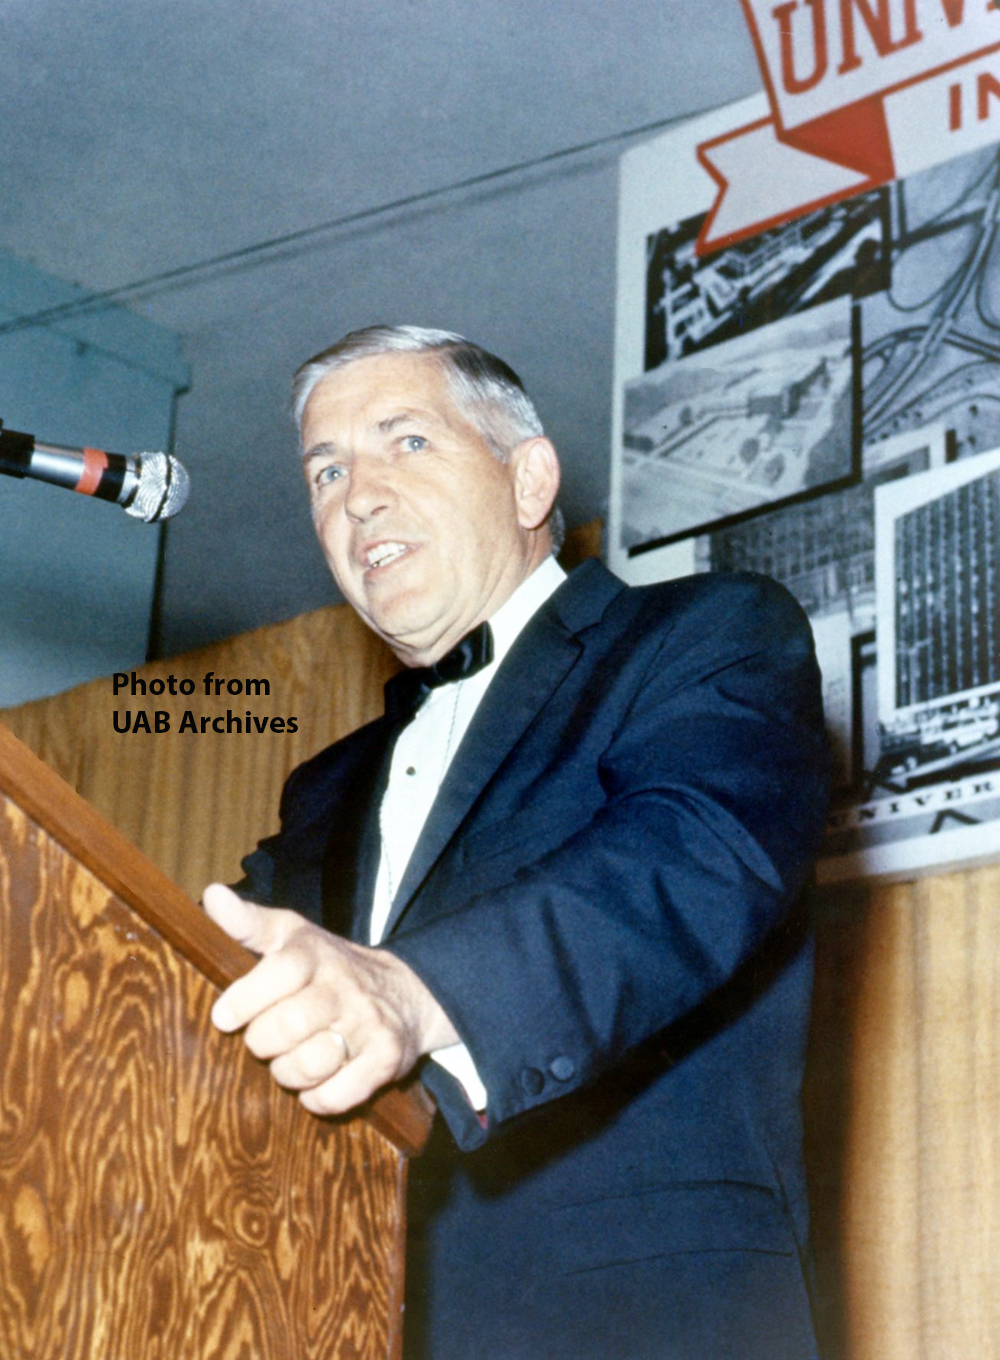 Volker speaks at testimonial dinner, September 5, 1969